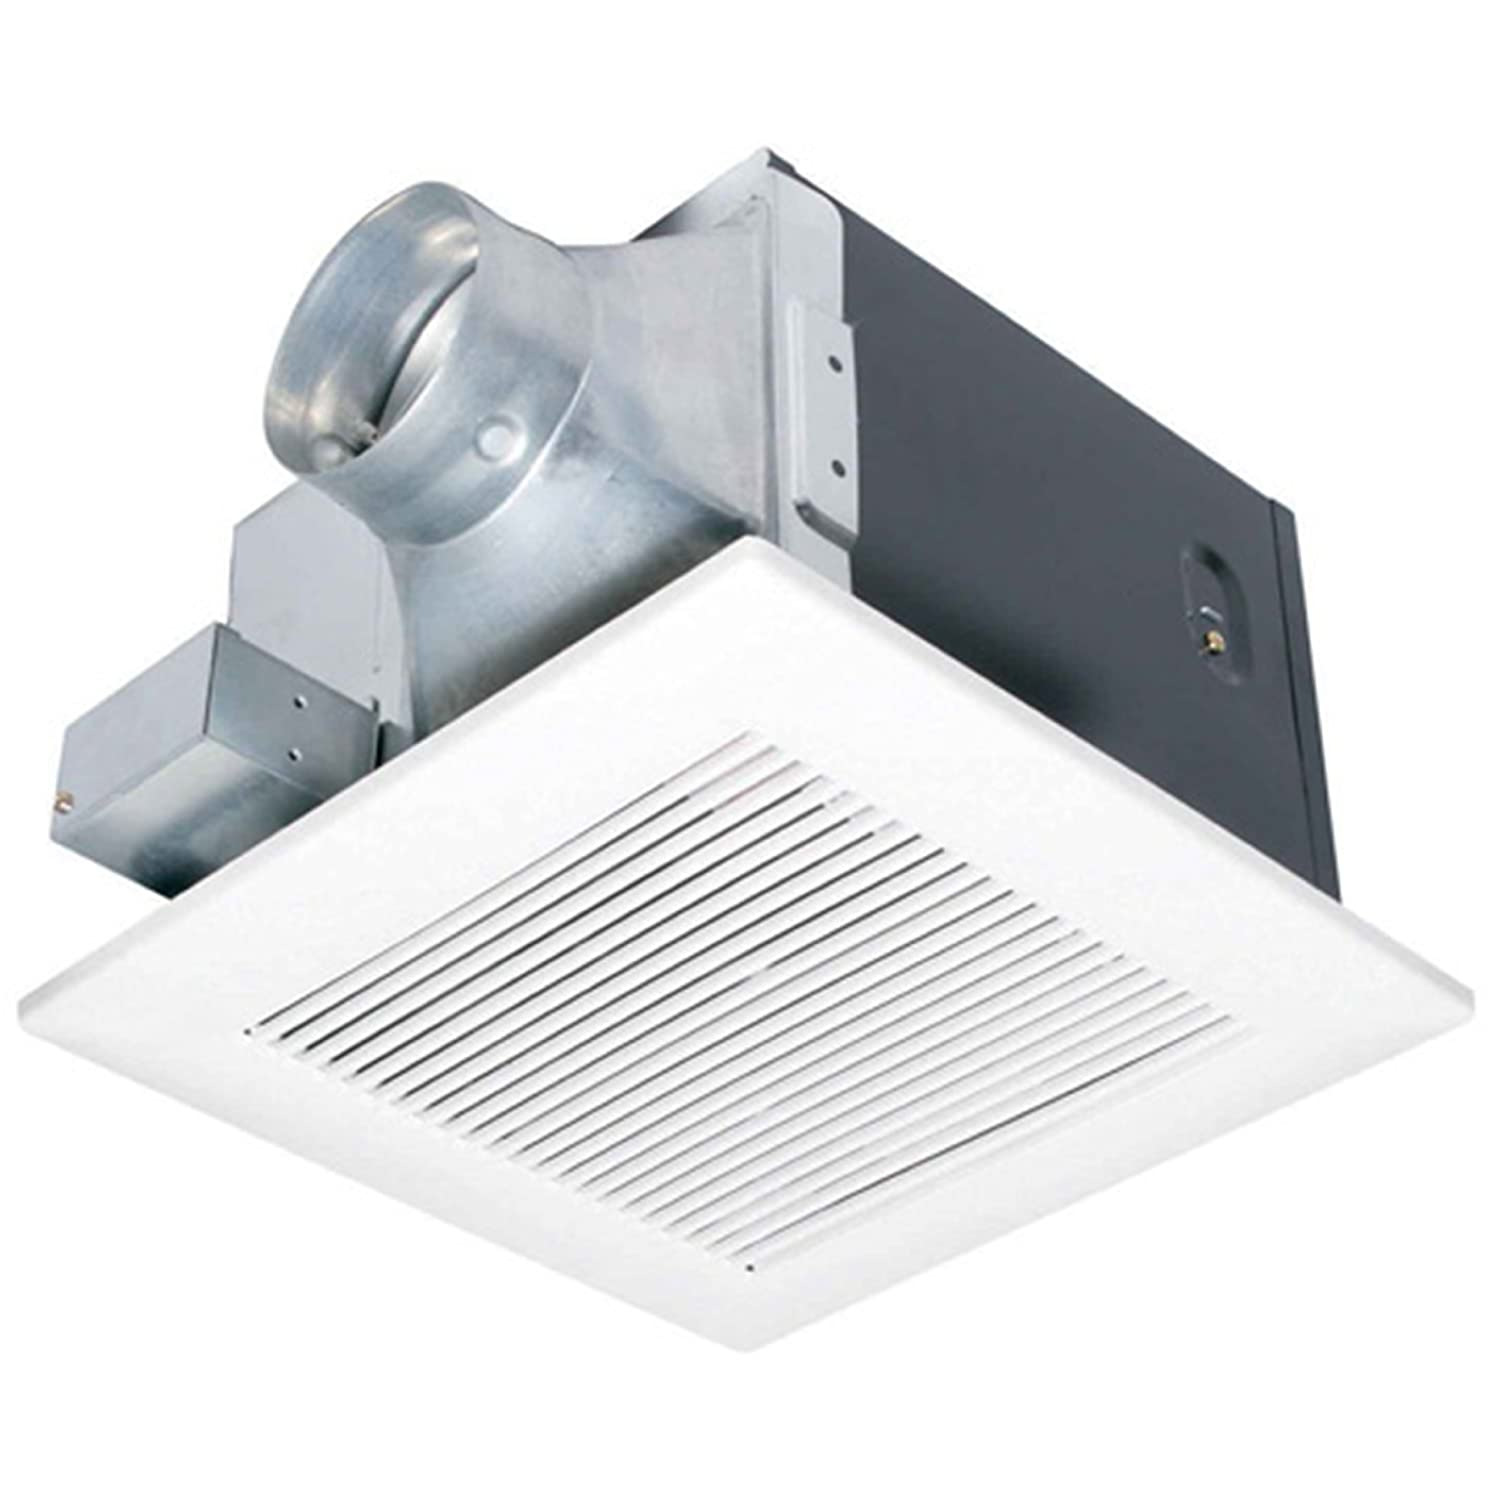 Panasonic FVVK WhisperGreen CFM Standard Ceiling Mounted - Panasonic bathroom ventilation fan